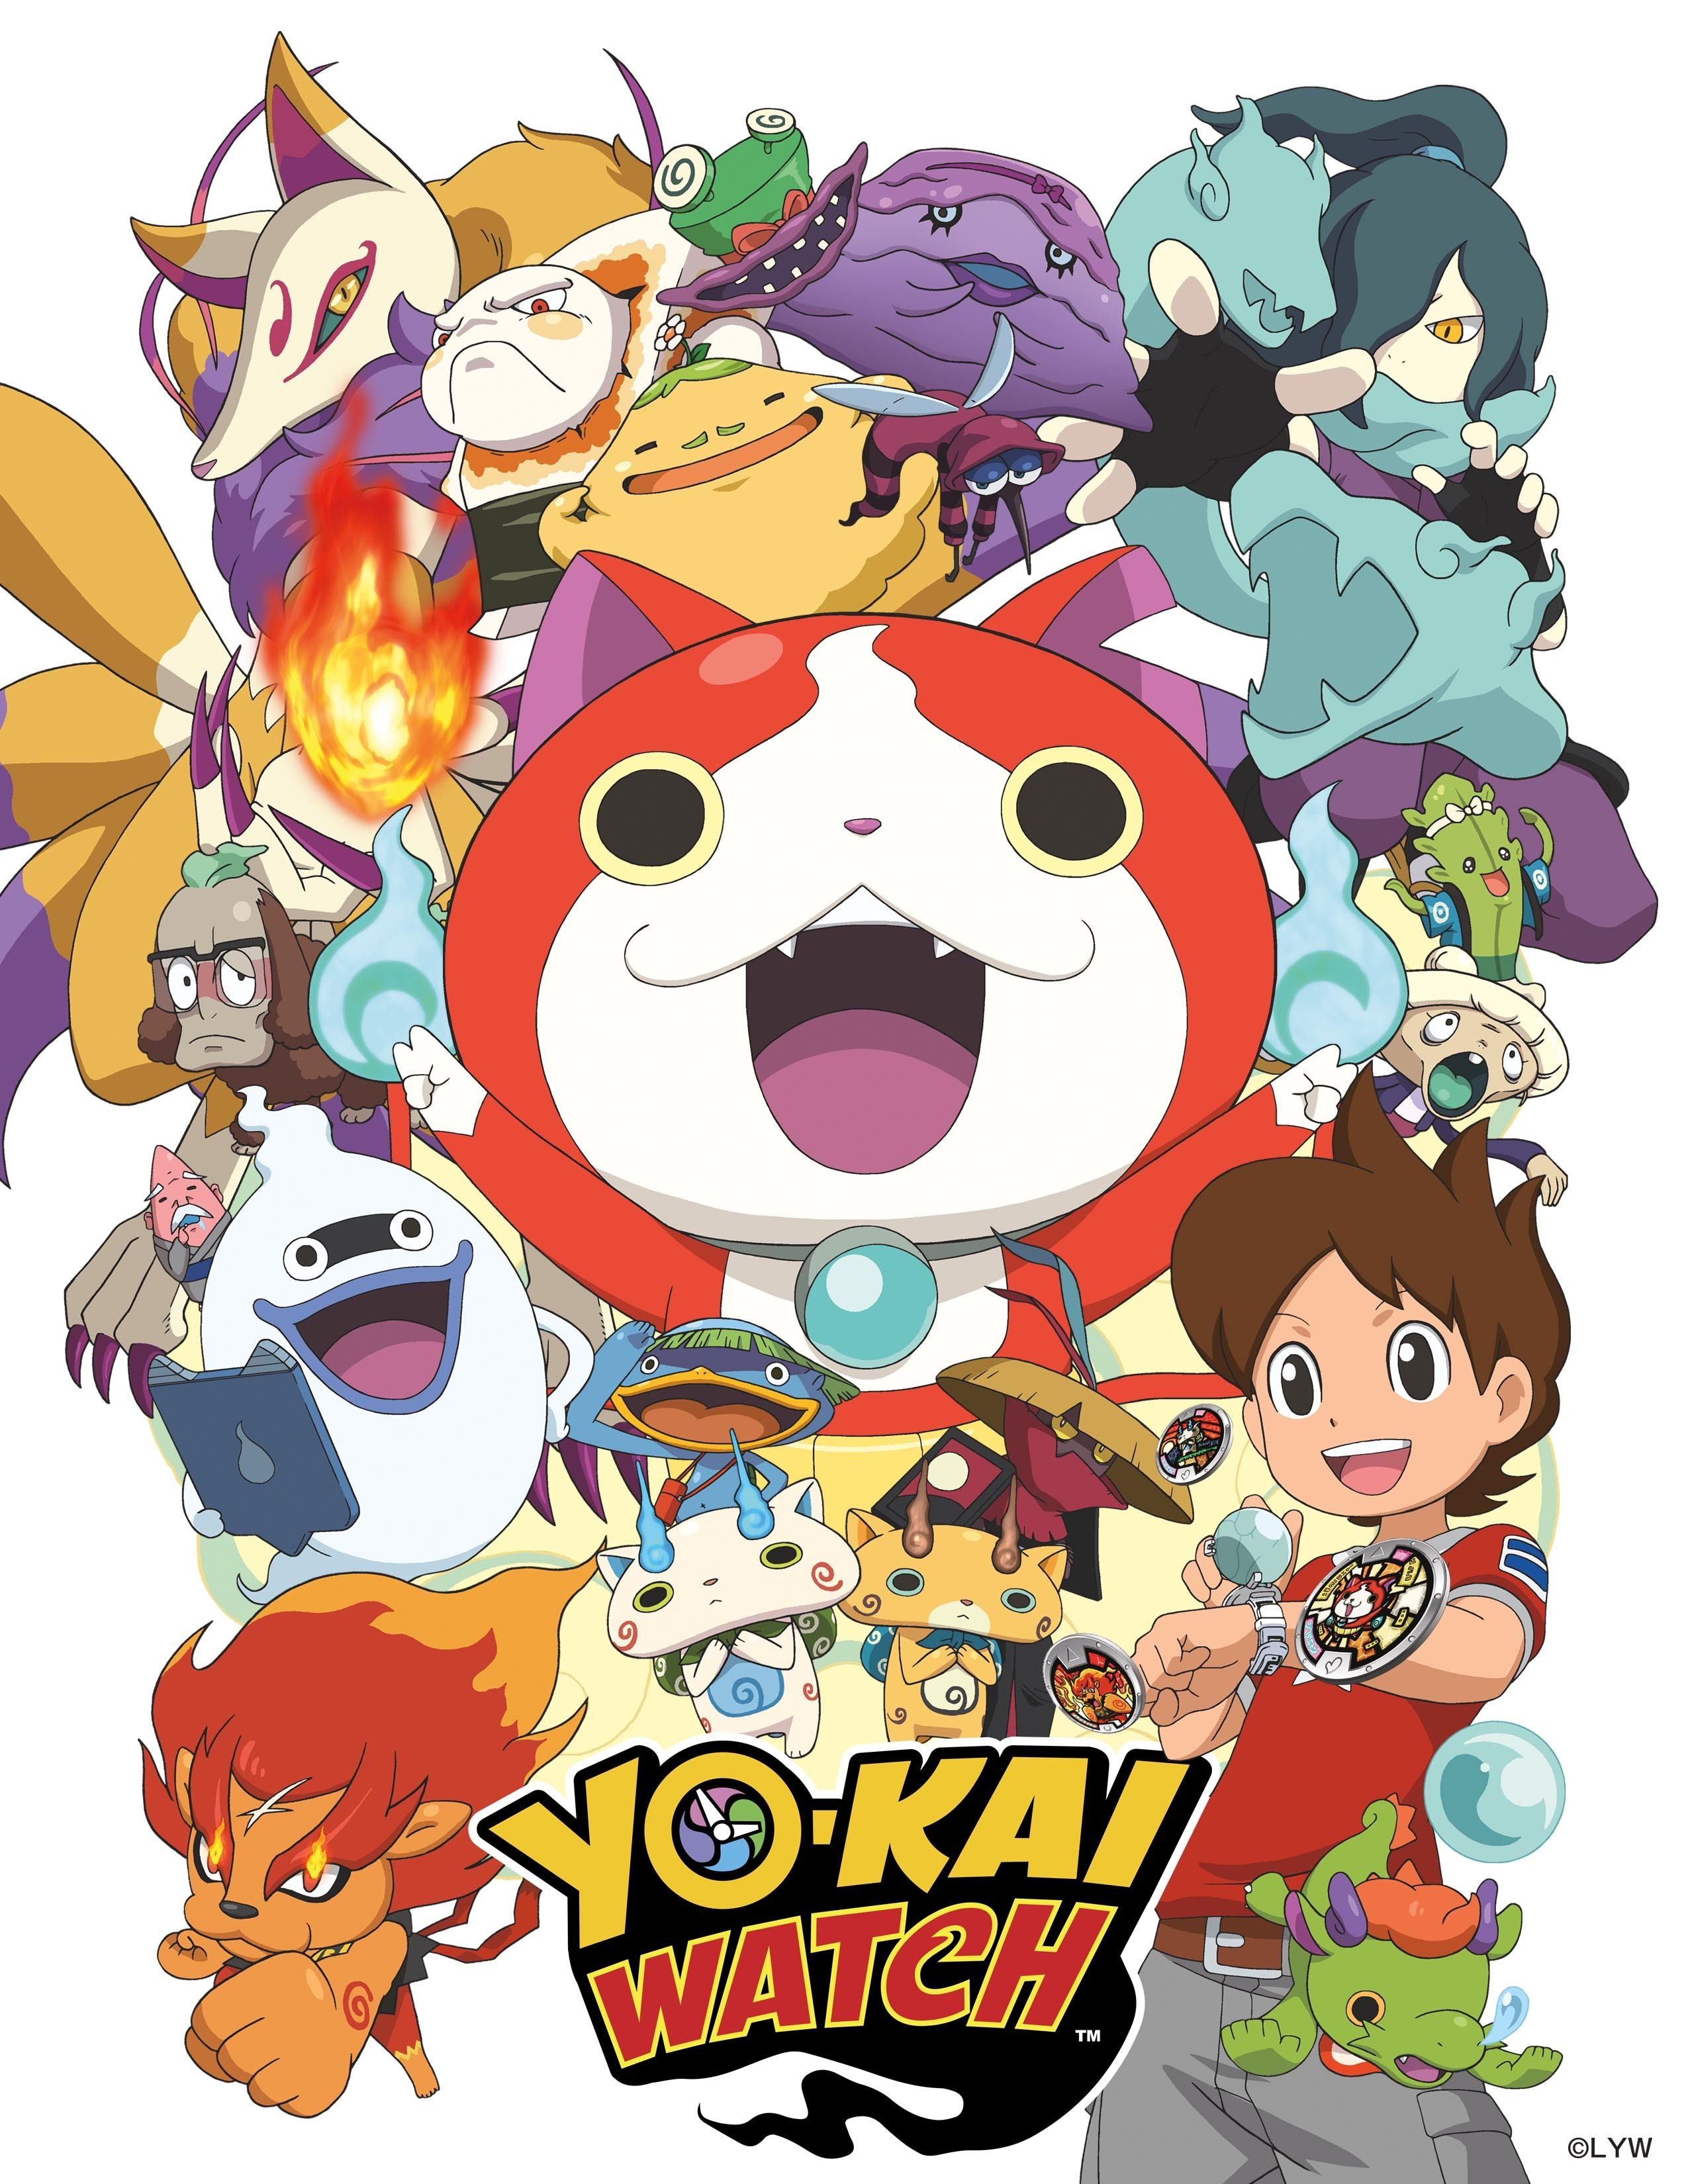 What Christians need to know about YoKai Watch Youkai